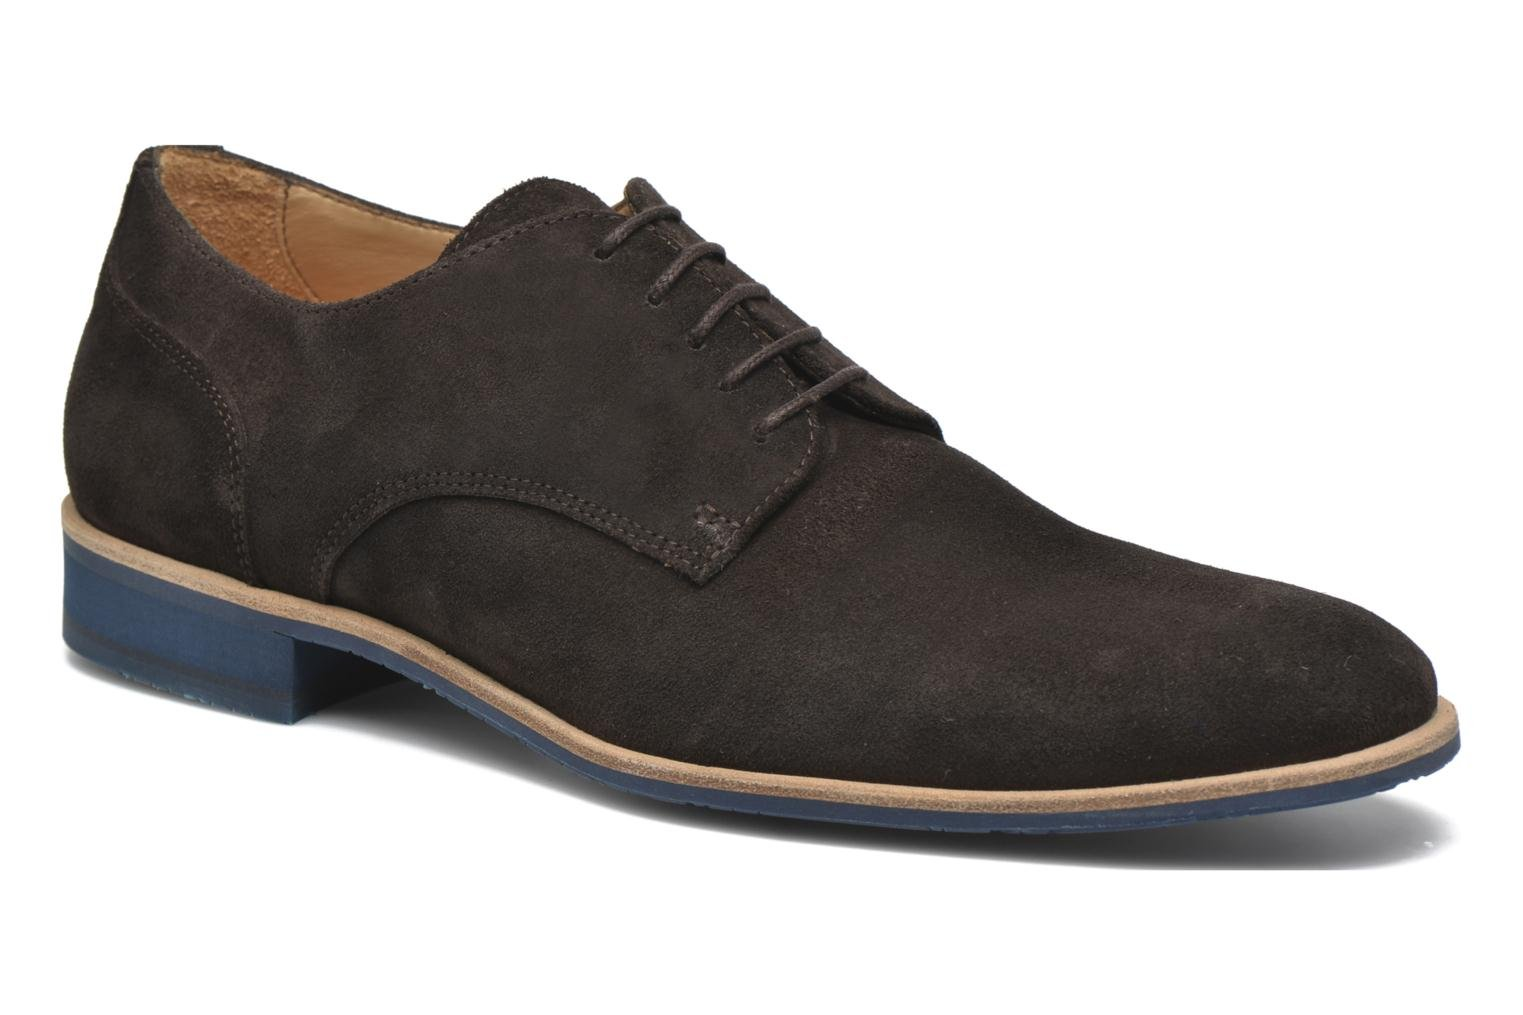 Chaussures He Spring Casual homme Amxf9C